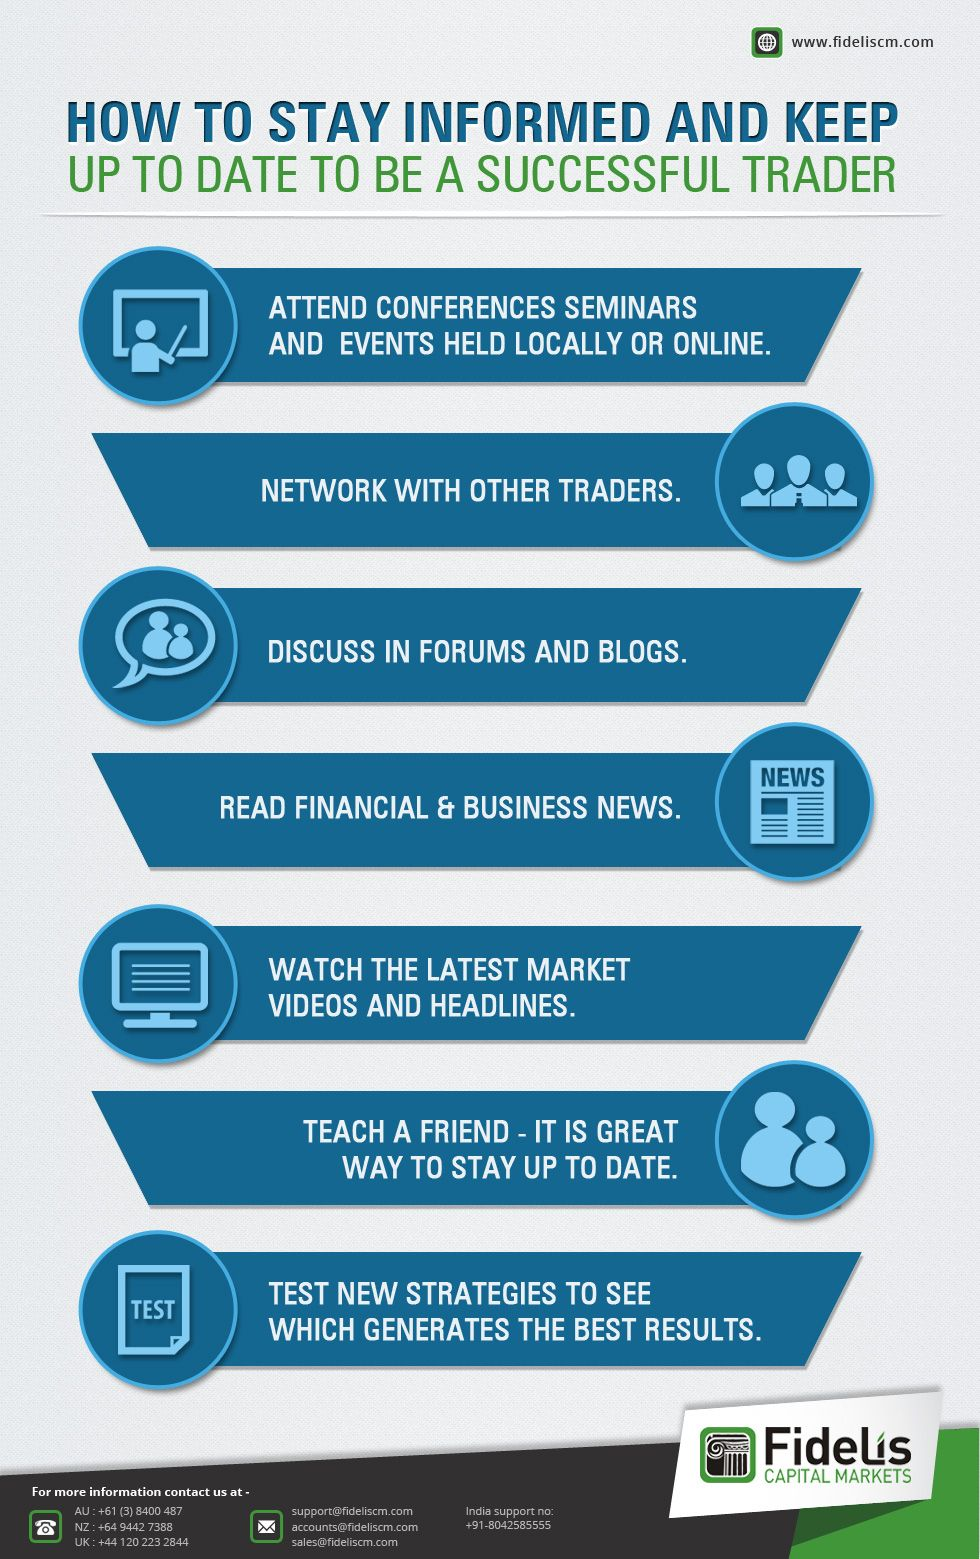 How to stay informed and keep up to date to be a successful Trader.  Here are the Best steps to follow:  For open a forex trading account visit: ww.fideliscm.com  #investor #capital #currency #fund #forex #infographic #USD # CAD #fidelis